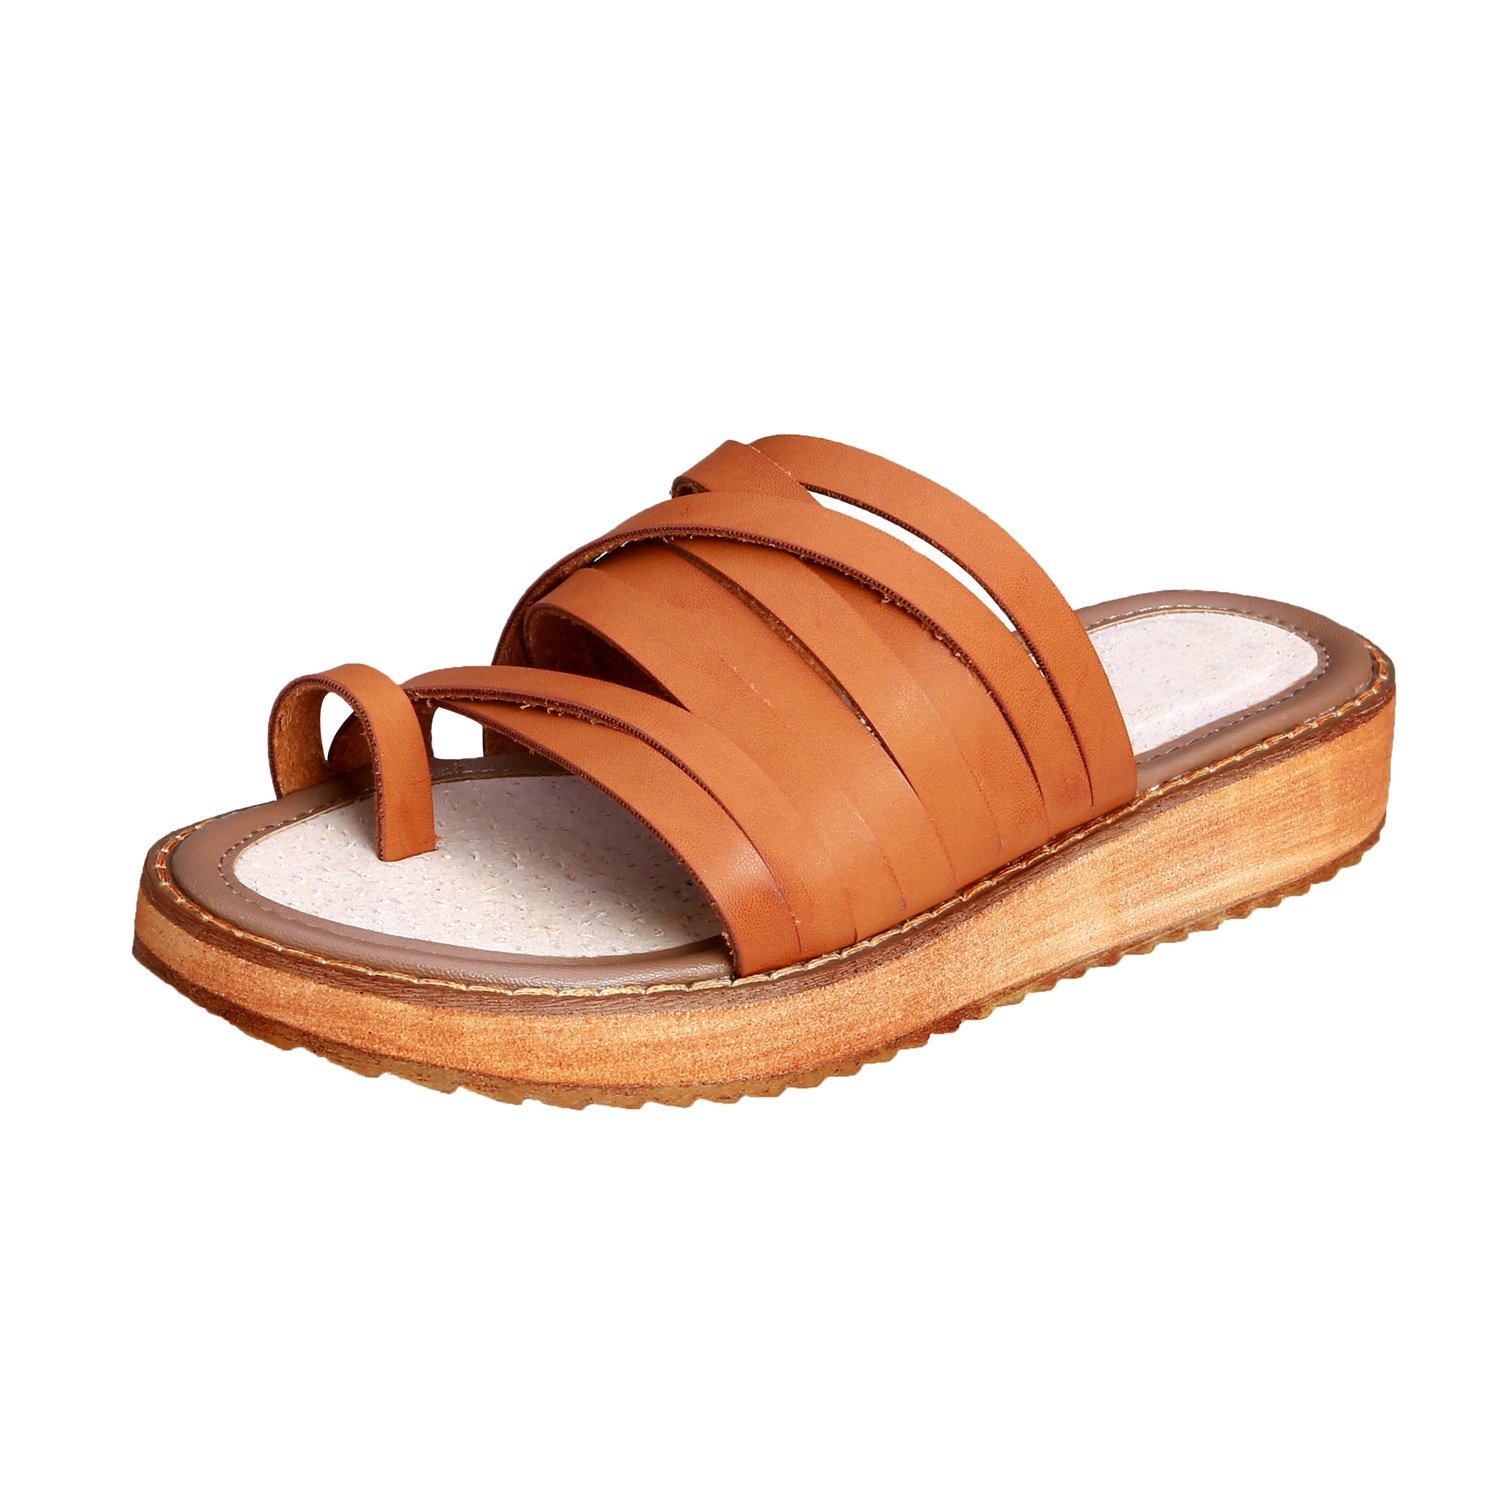 Smilun Girl's Roman Sandals Flip Flop Thong Cross Wrap Back Strap Metal Buckle Strap Flip Flops Thongs Sandals Flat Gladiator Sandals Brown US6.5